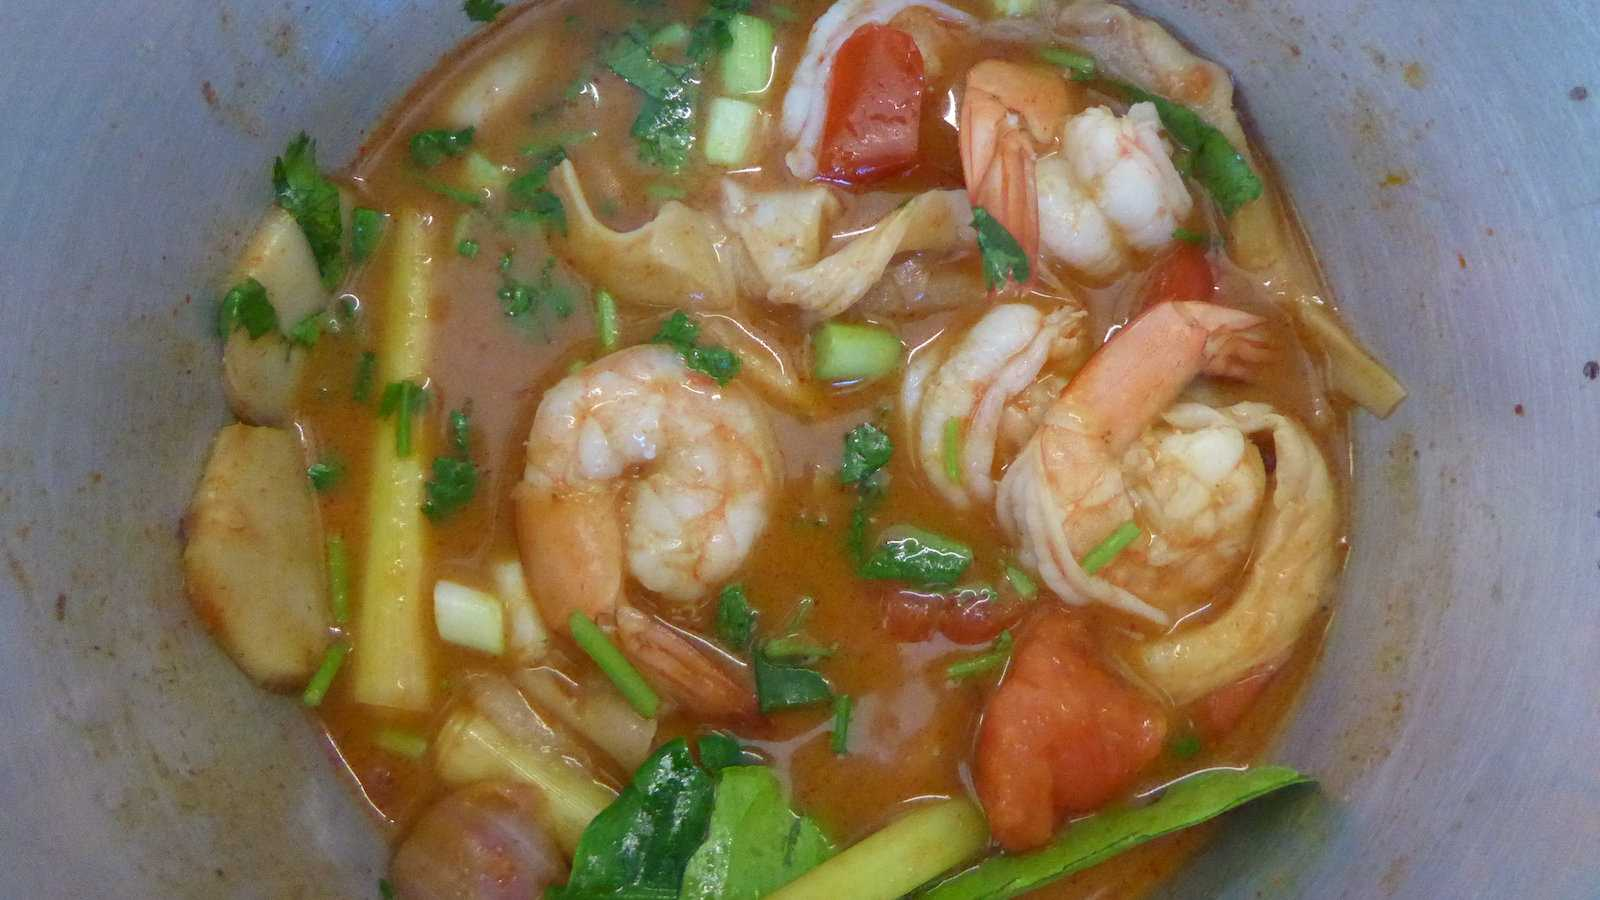 Tom yum goong is a popular Thai hot and sour soup with prawns